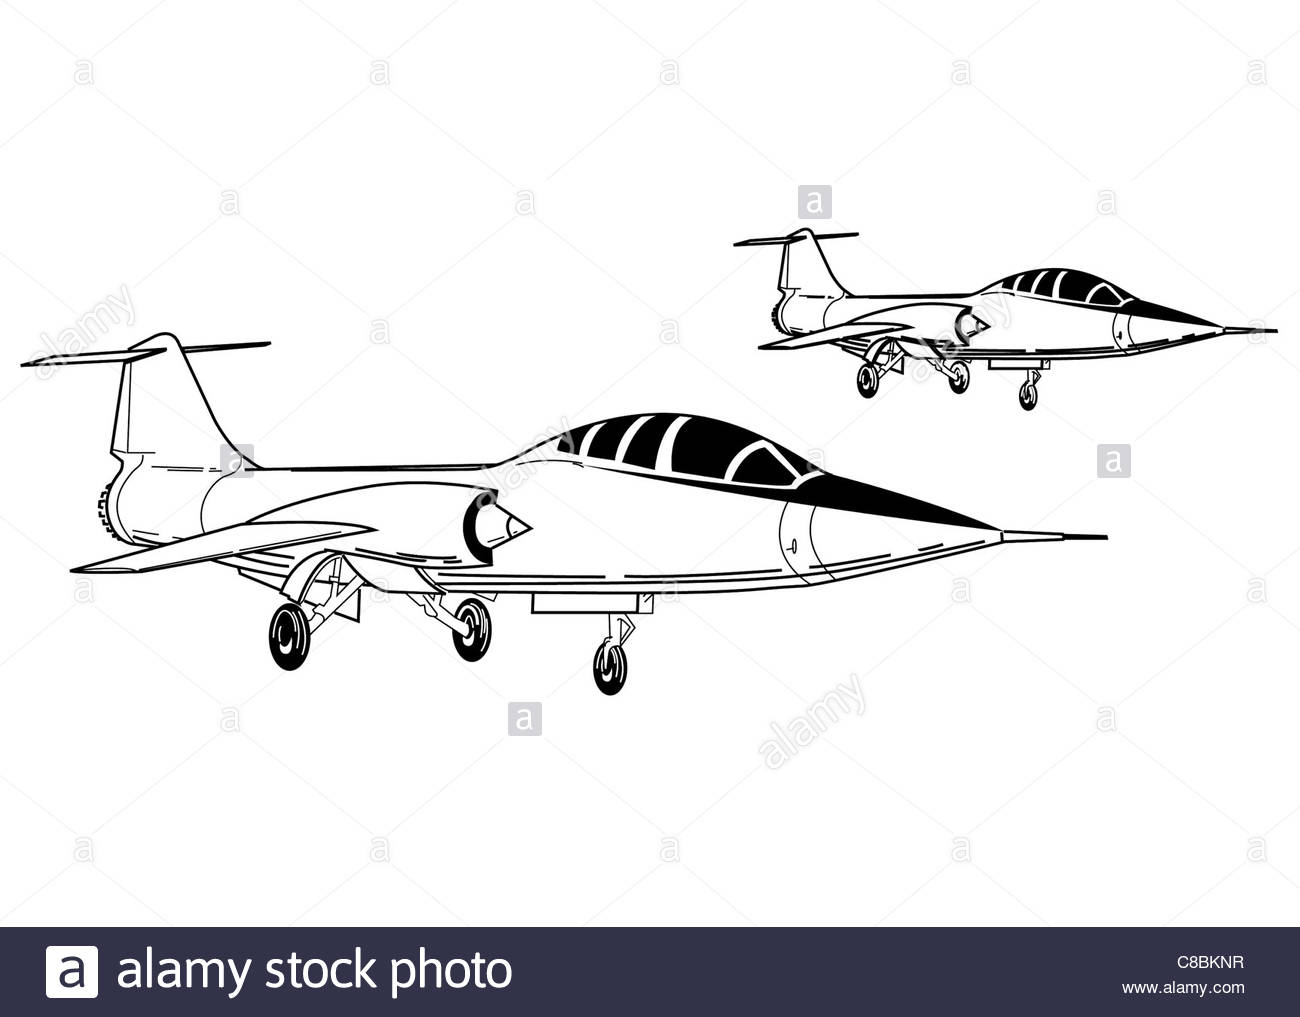 1300x1017 3 View Aircraft Line Art Drawing F 104 Starfighter Stock Photo